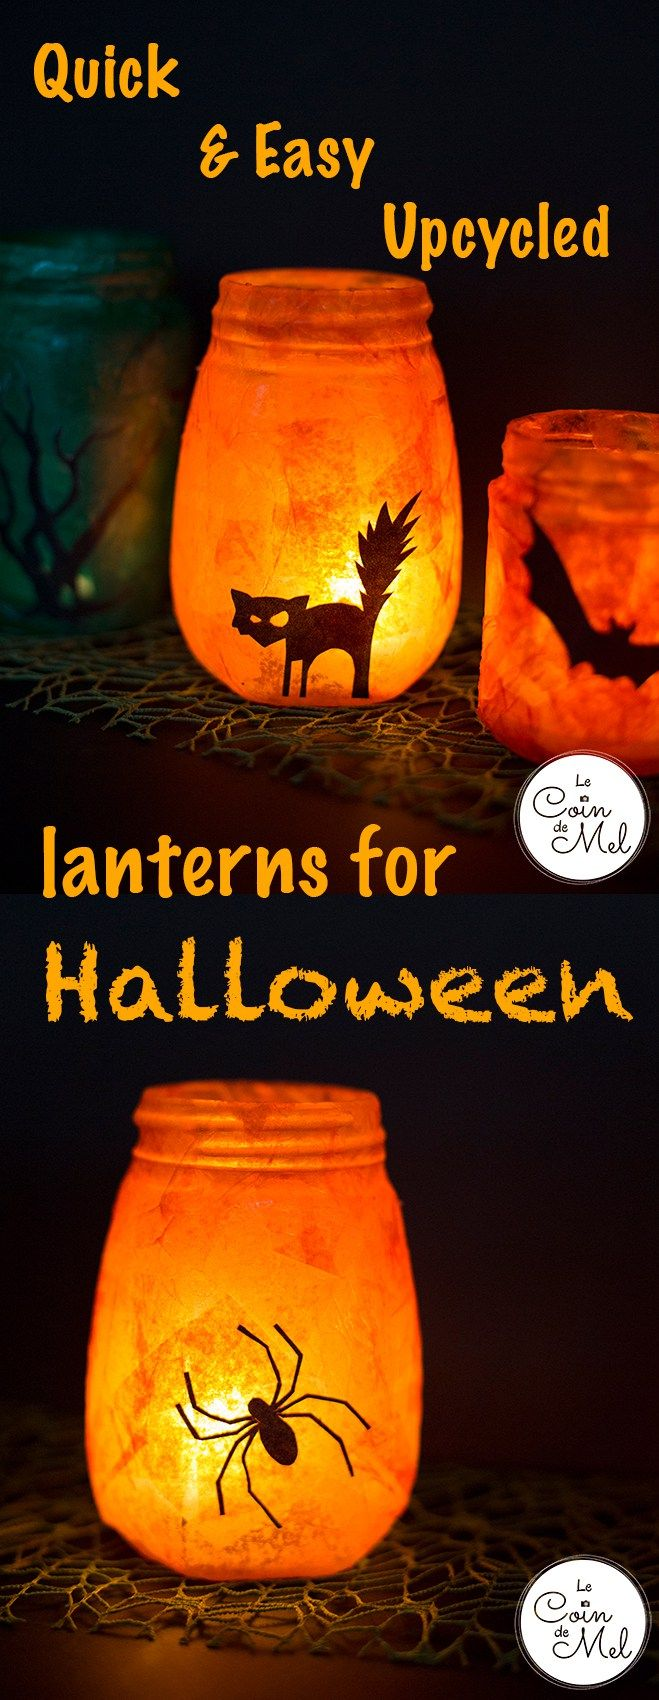 Best 25+ Halloween lanterns ideas on Pinterest | Fun halloween ...